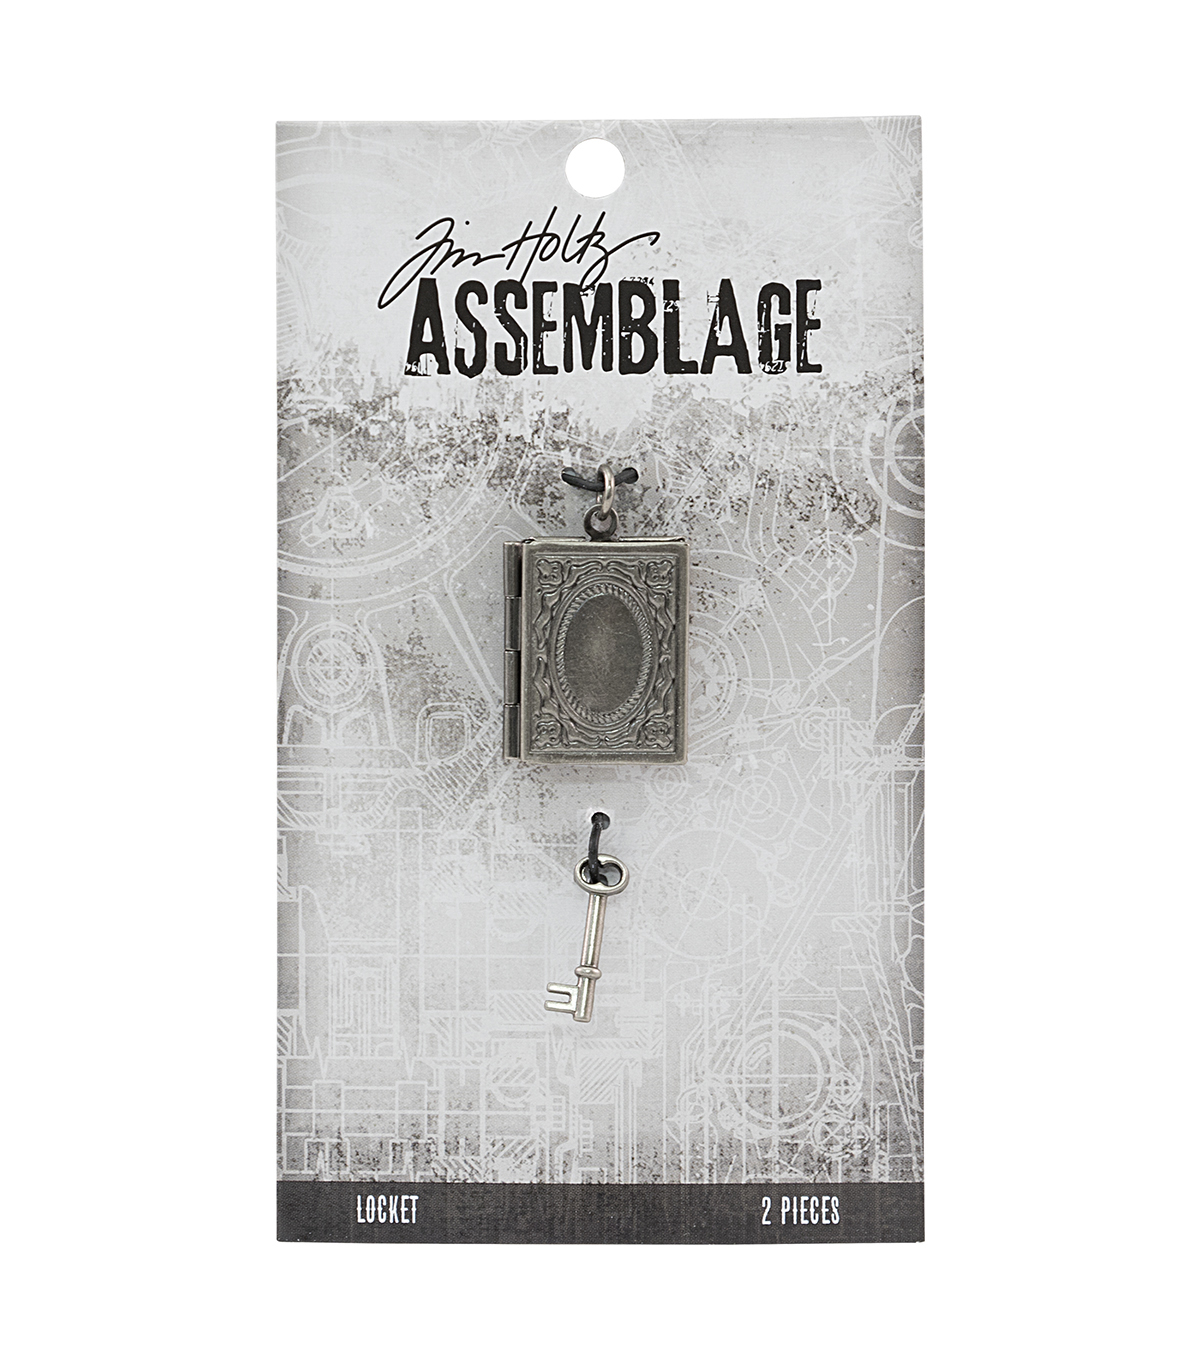 Tim Holtz Assemblage Book & Key Locket Charms